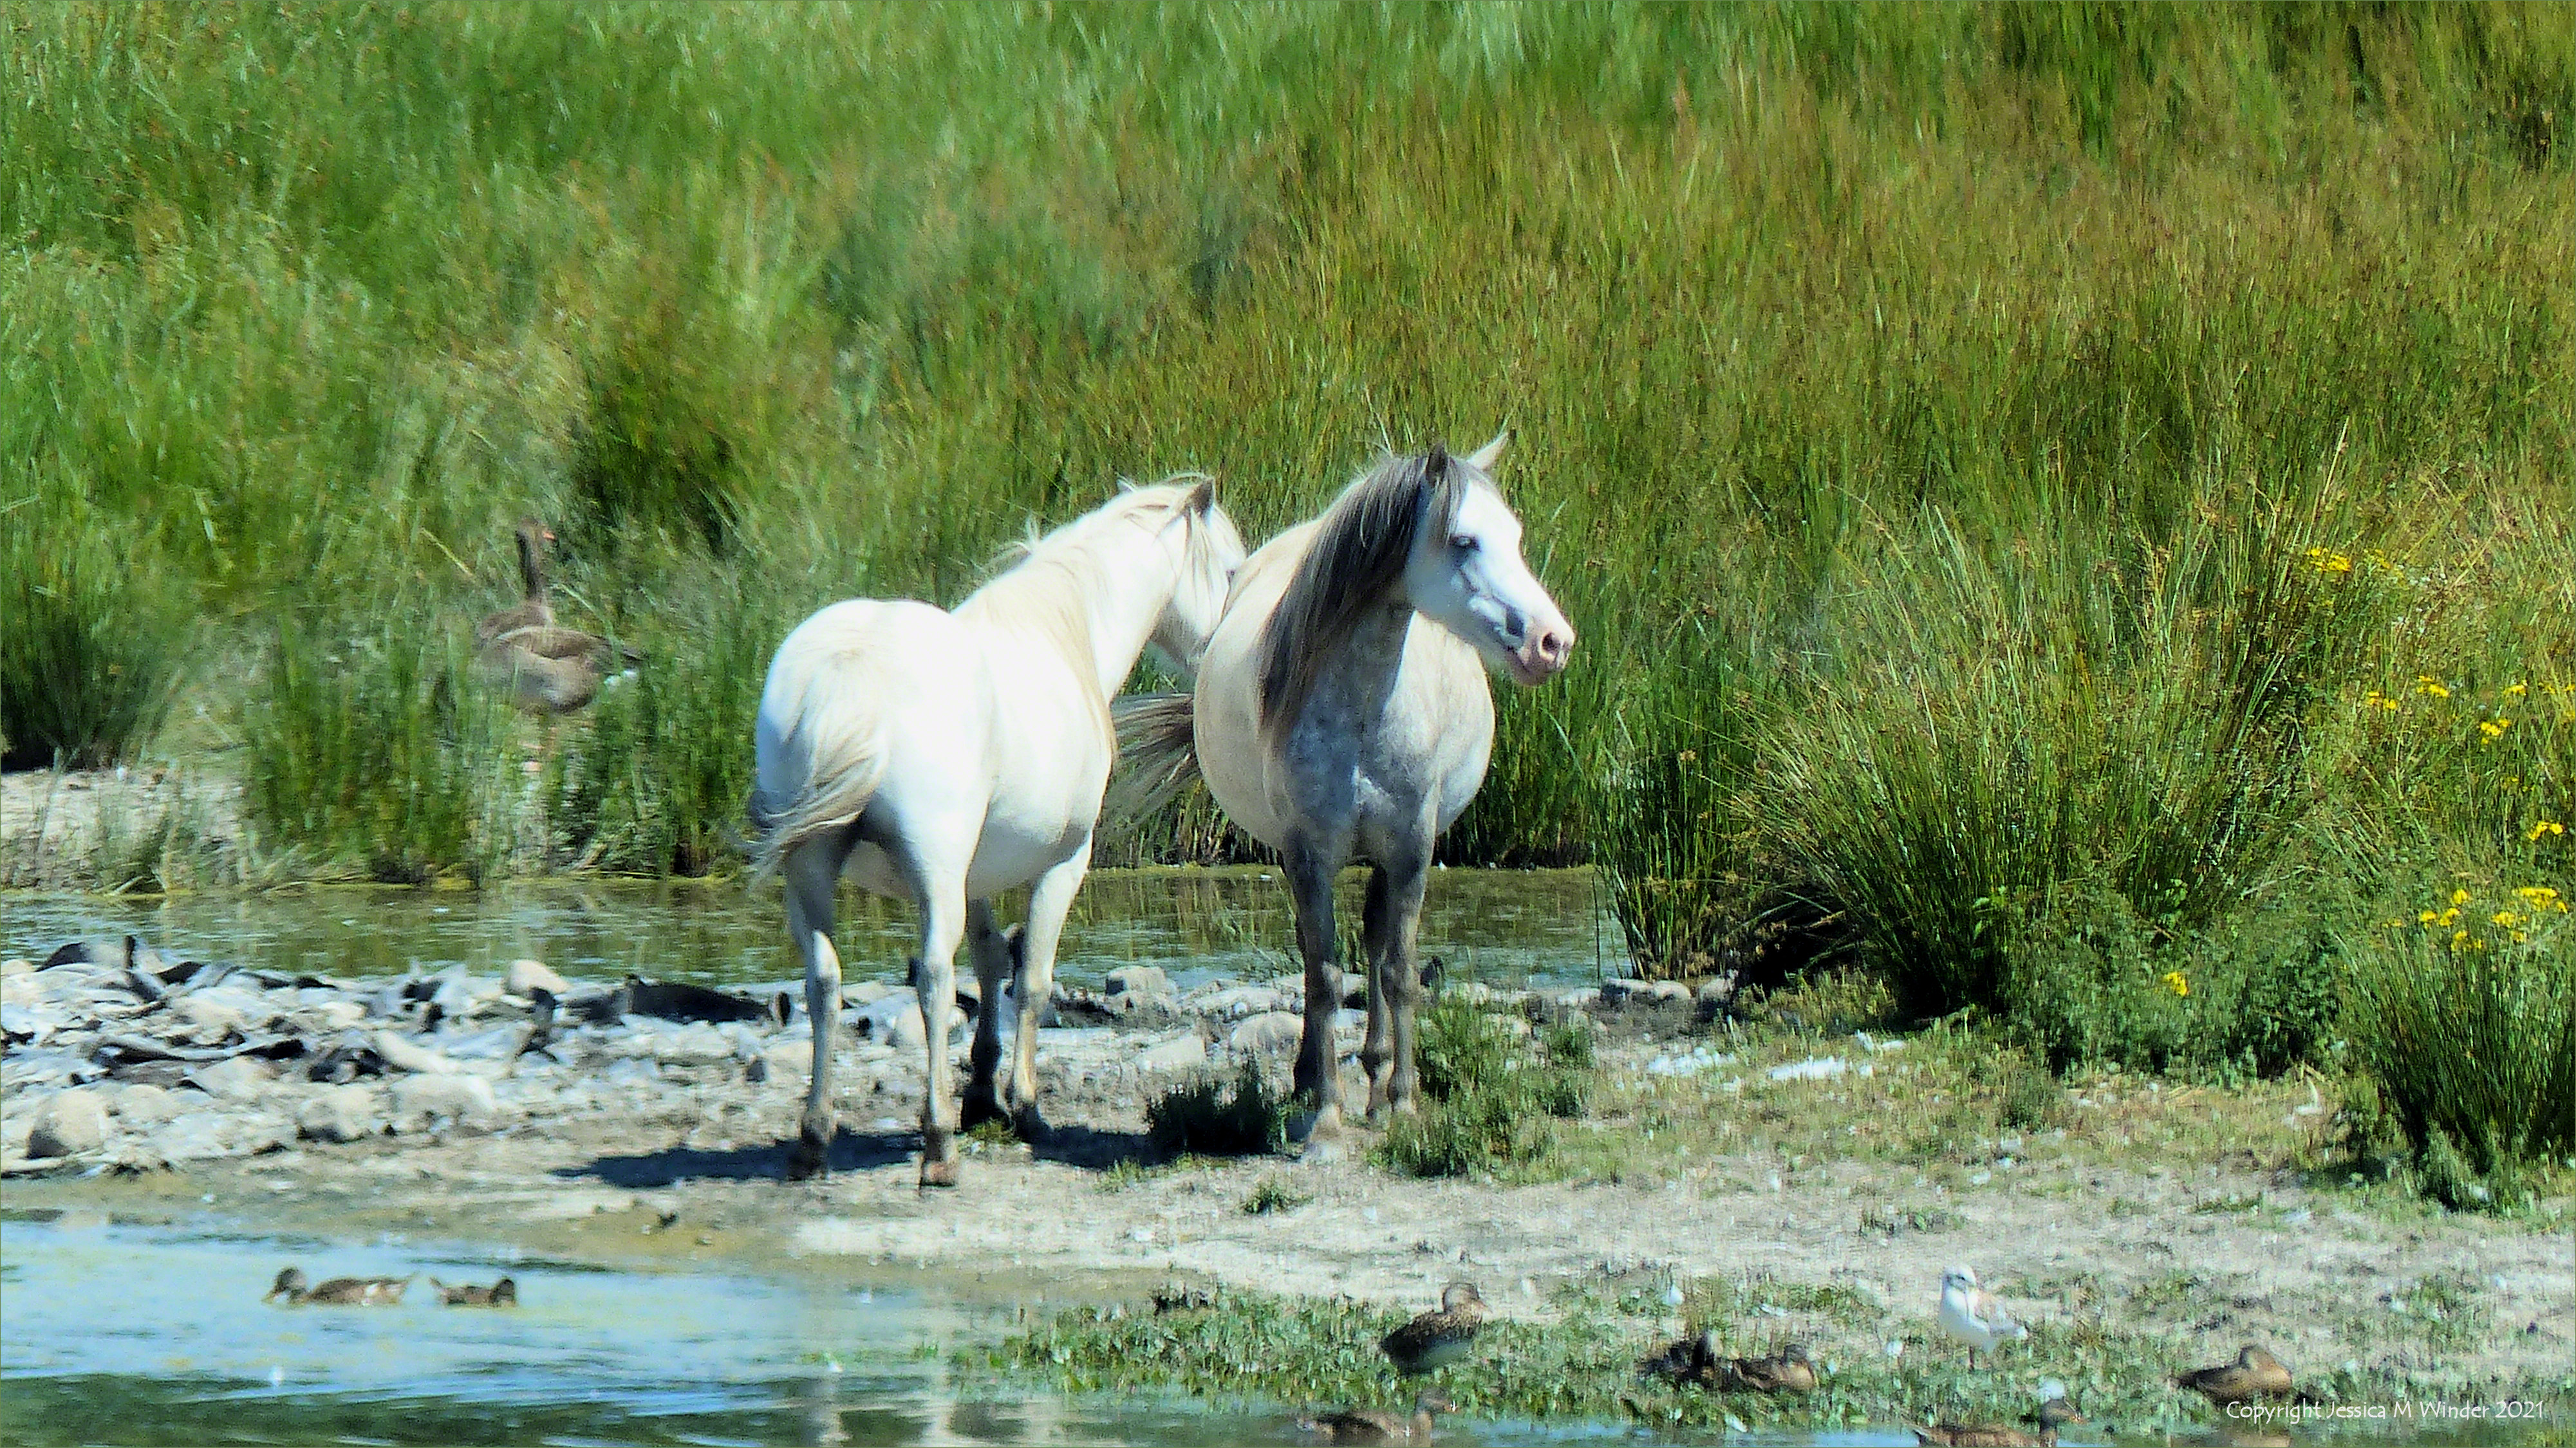 Two white ponies on the edge of a lake in the Millennium Wetlands at Llanelli, South Wales.